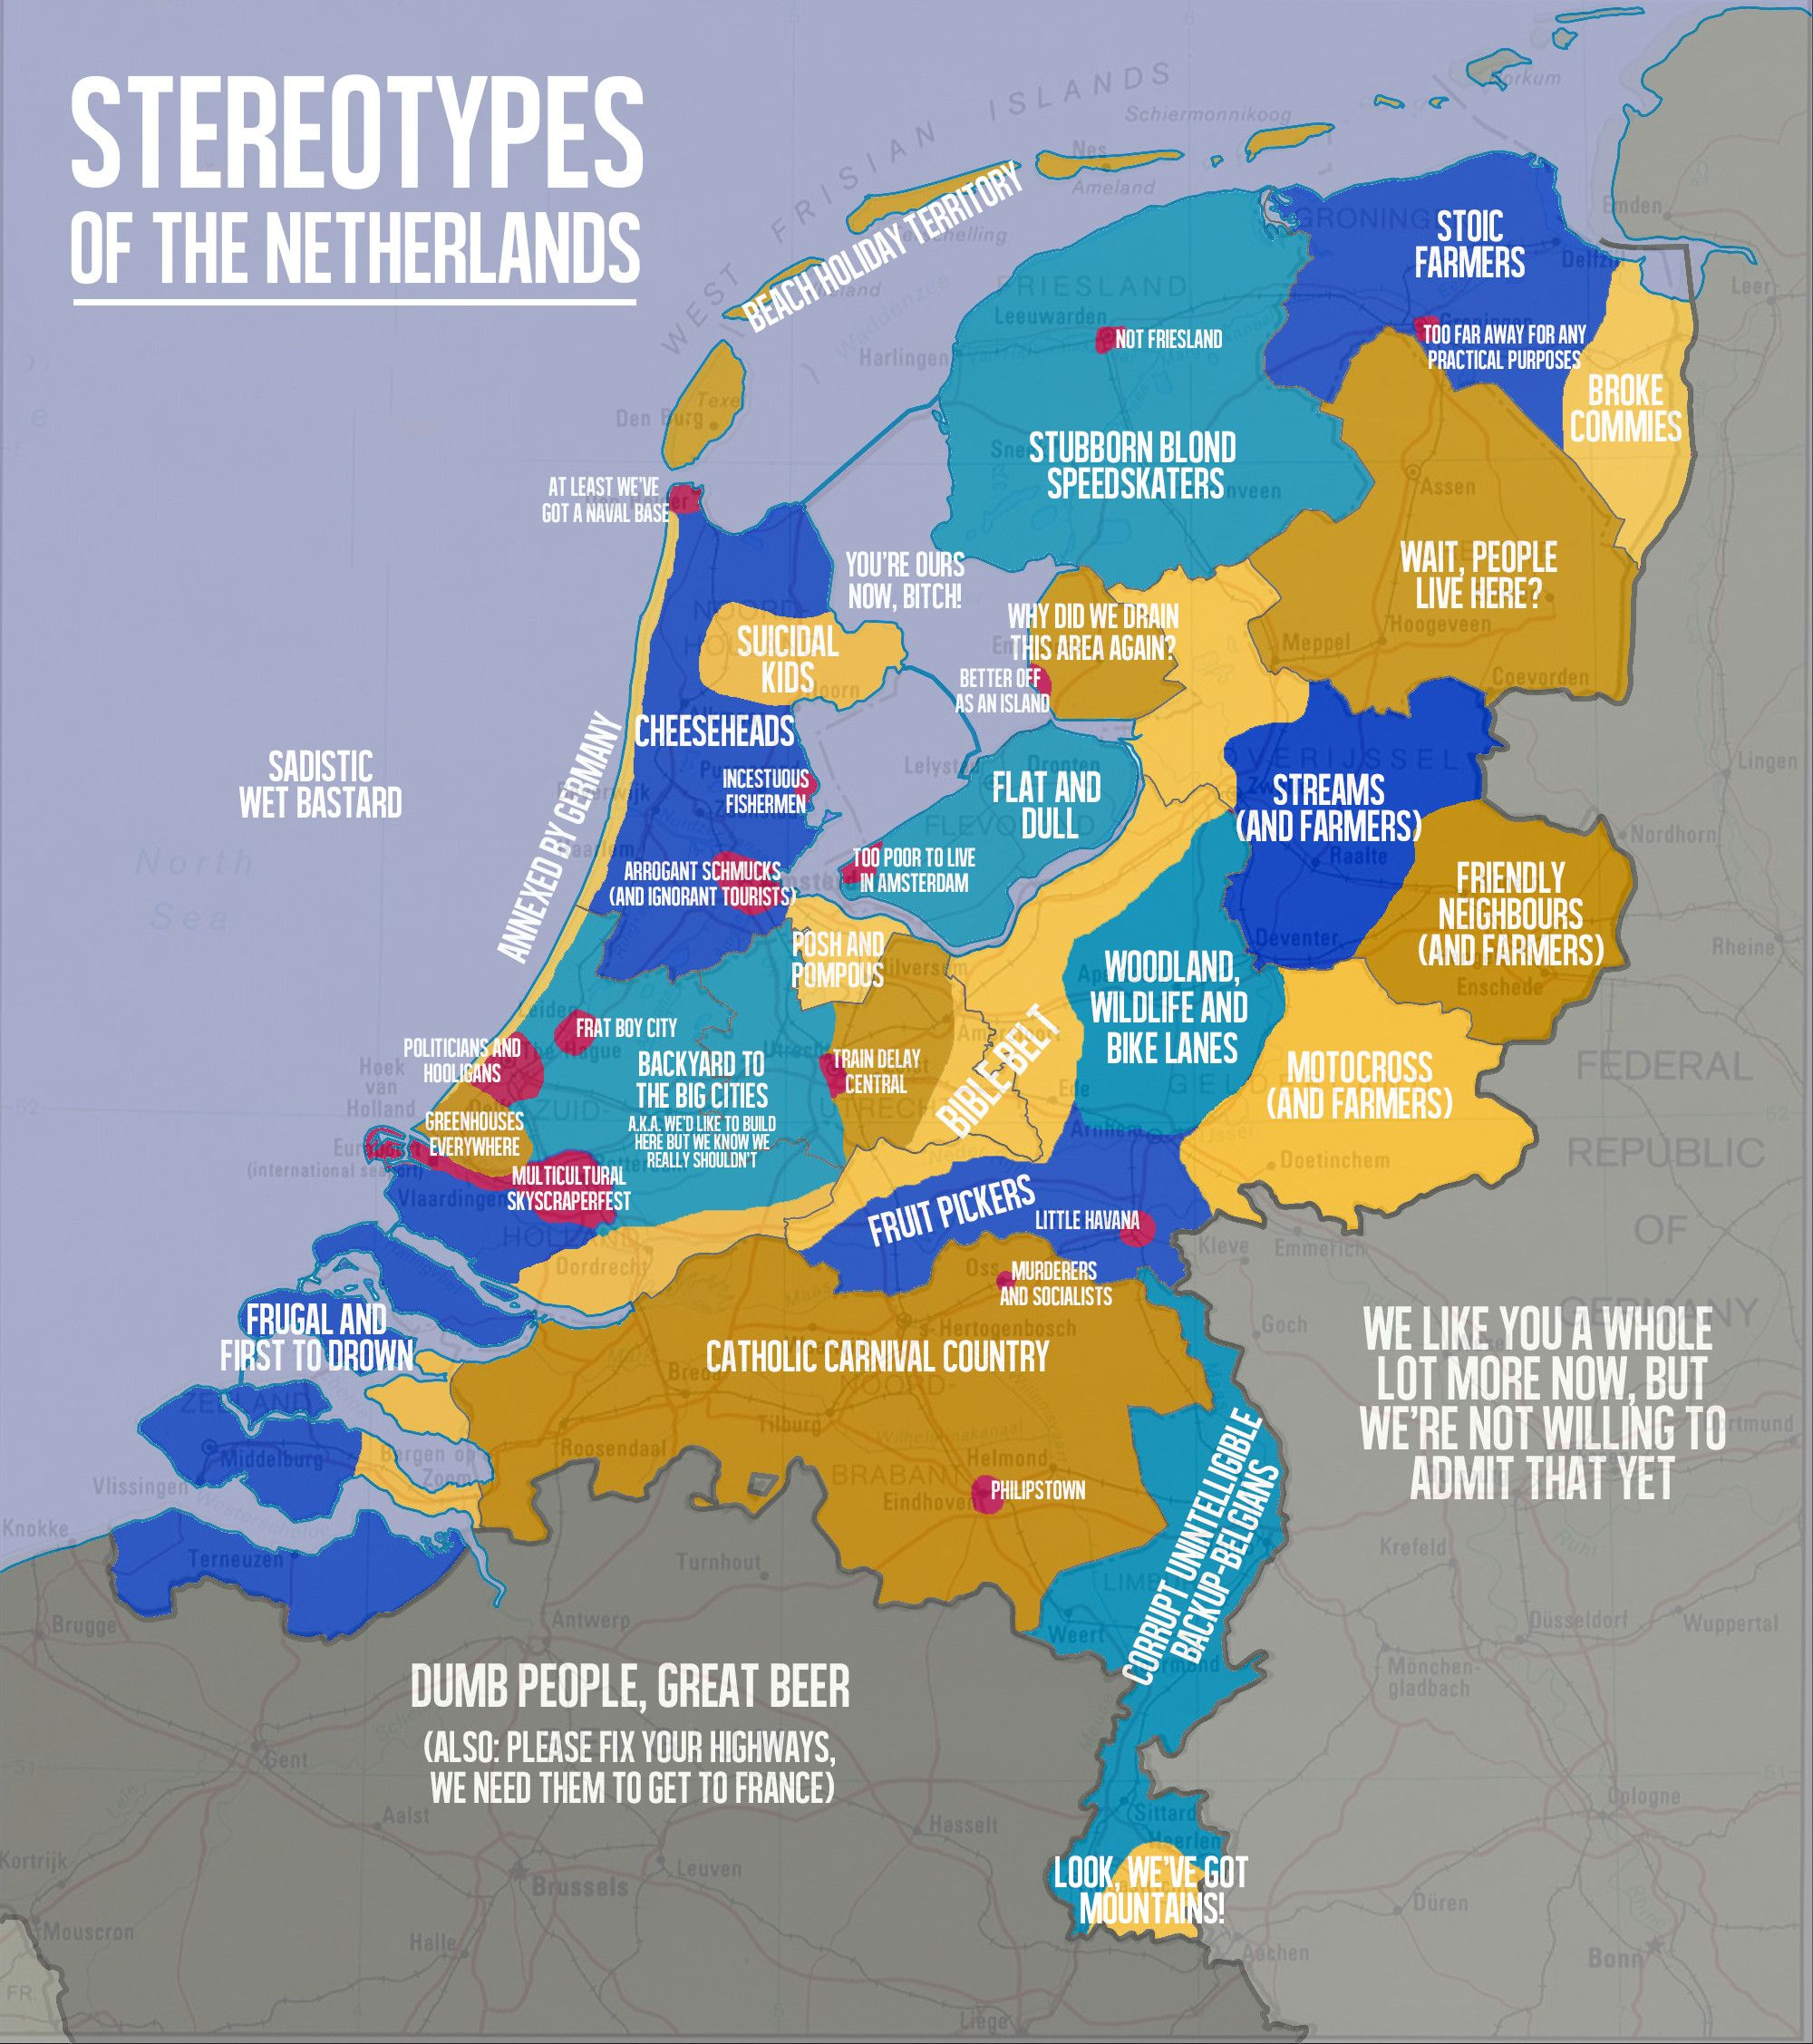 Stereotypes of the netherlands blondes geography and dutch stereotypes of the netherlands imgur gumiabroncs Choice Image